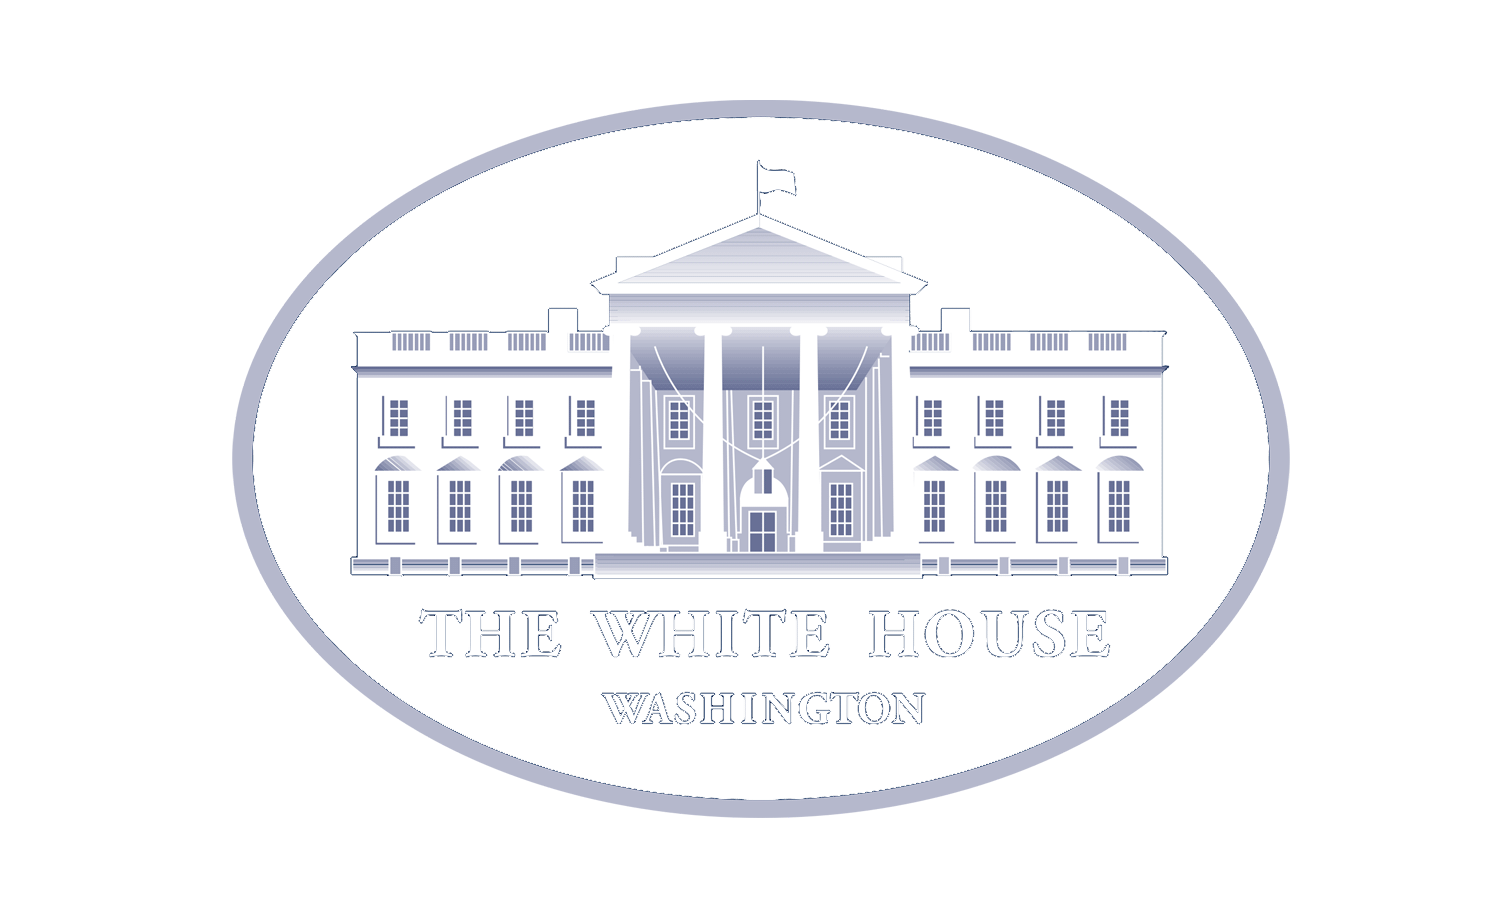 White house logos . Courthouse clipart whitehouse